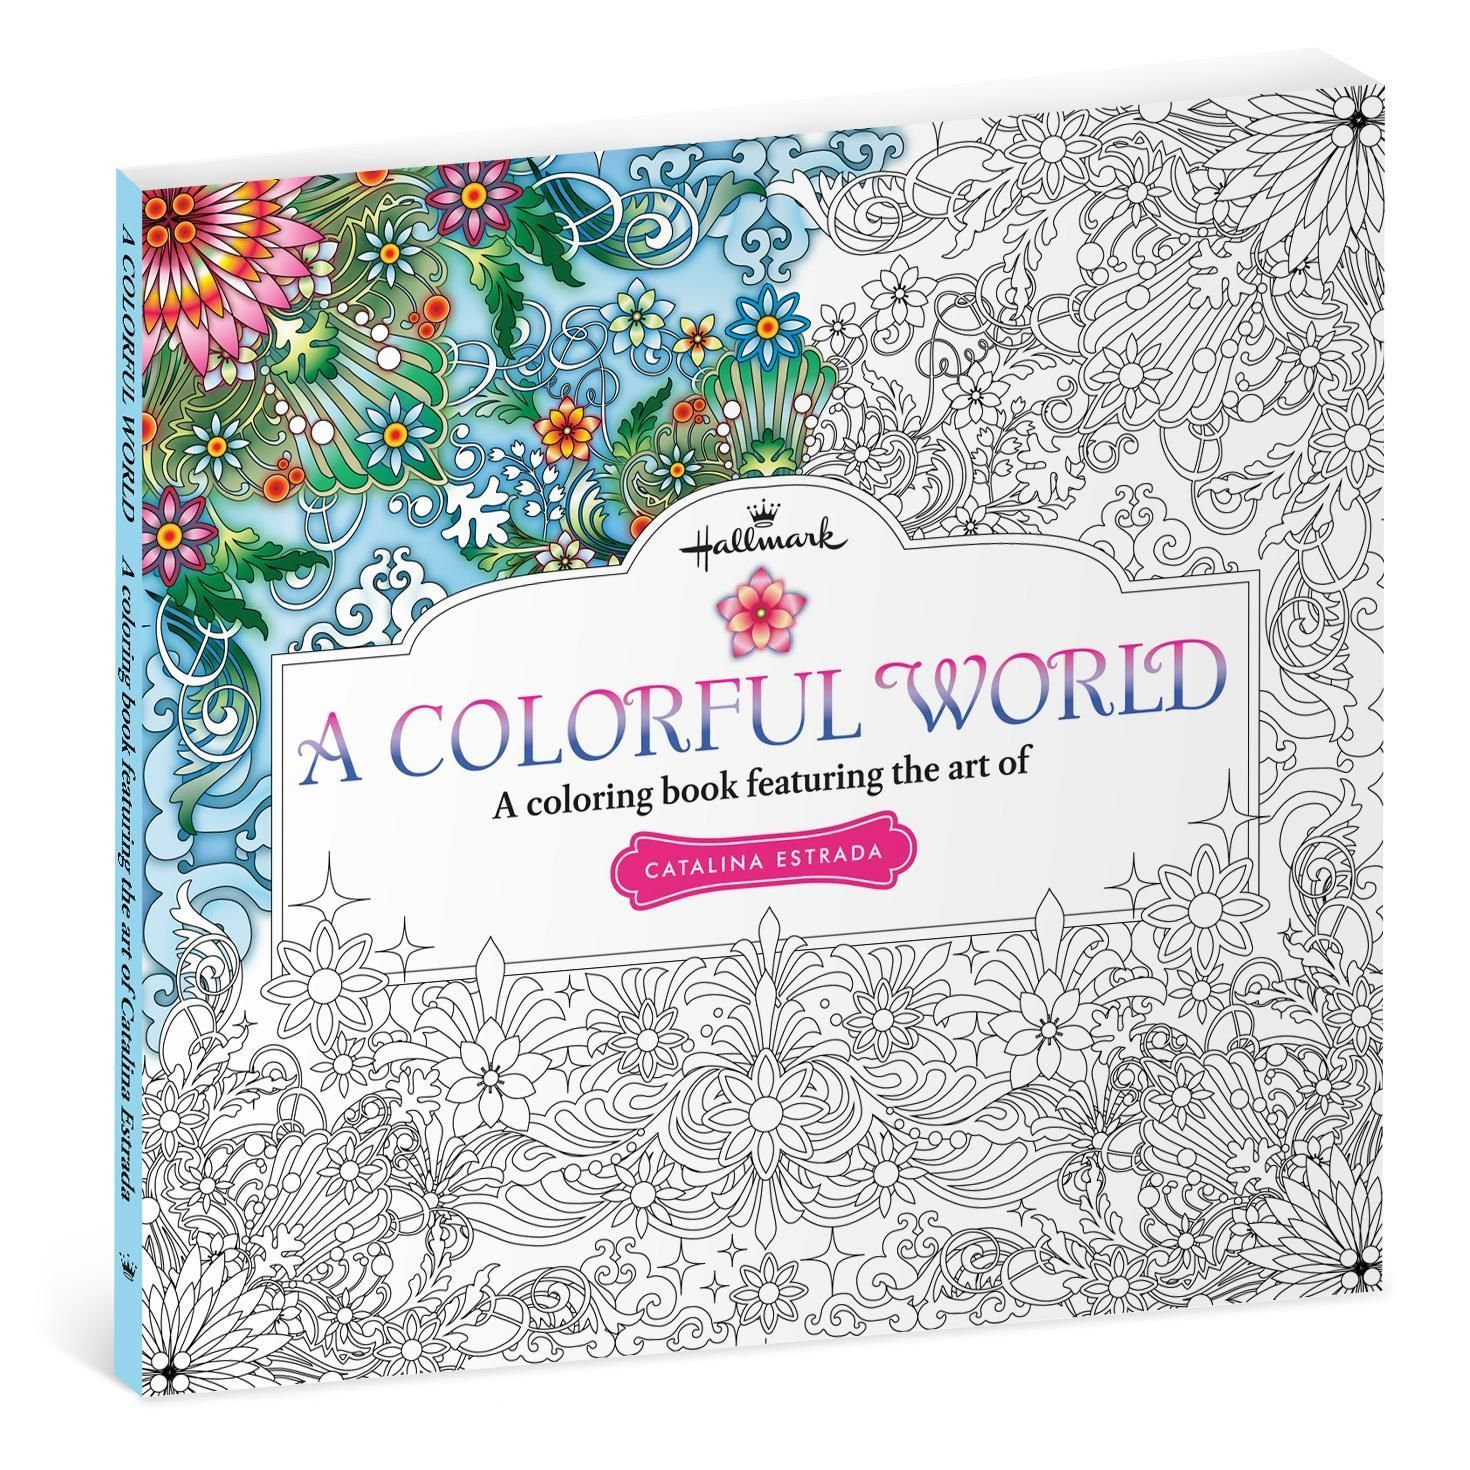 Swear word coloring book sarah bigwood - A Colorful World A Coloring Book Featuring The Art Of Catalina Estrada